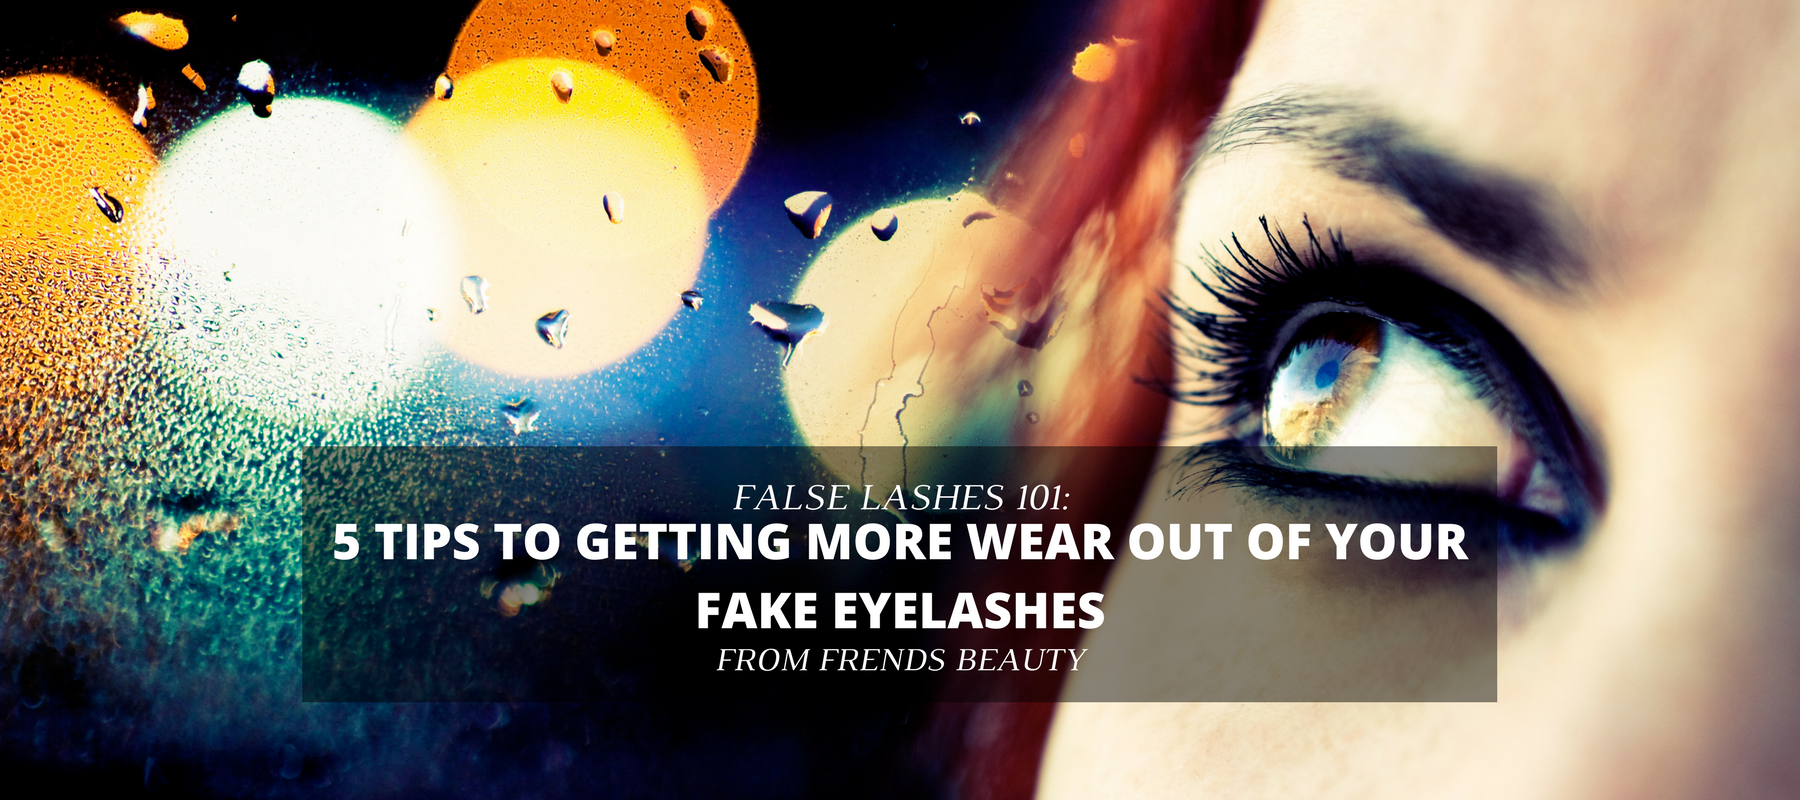 5 Tips To Getting More Wear Out Of Your Fake Eyelashes